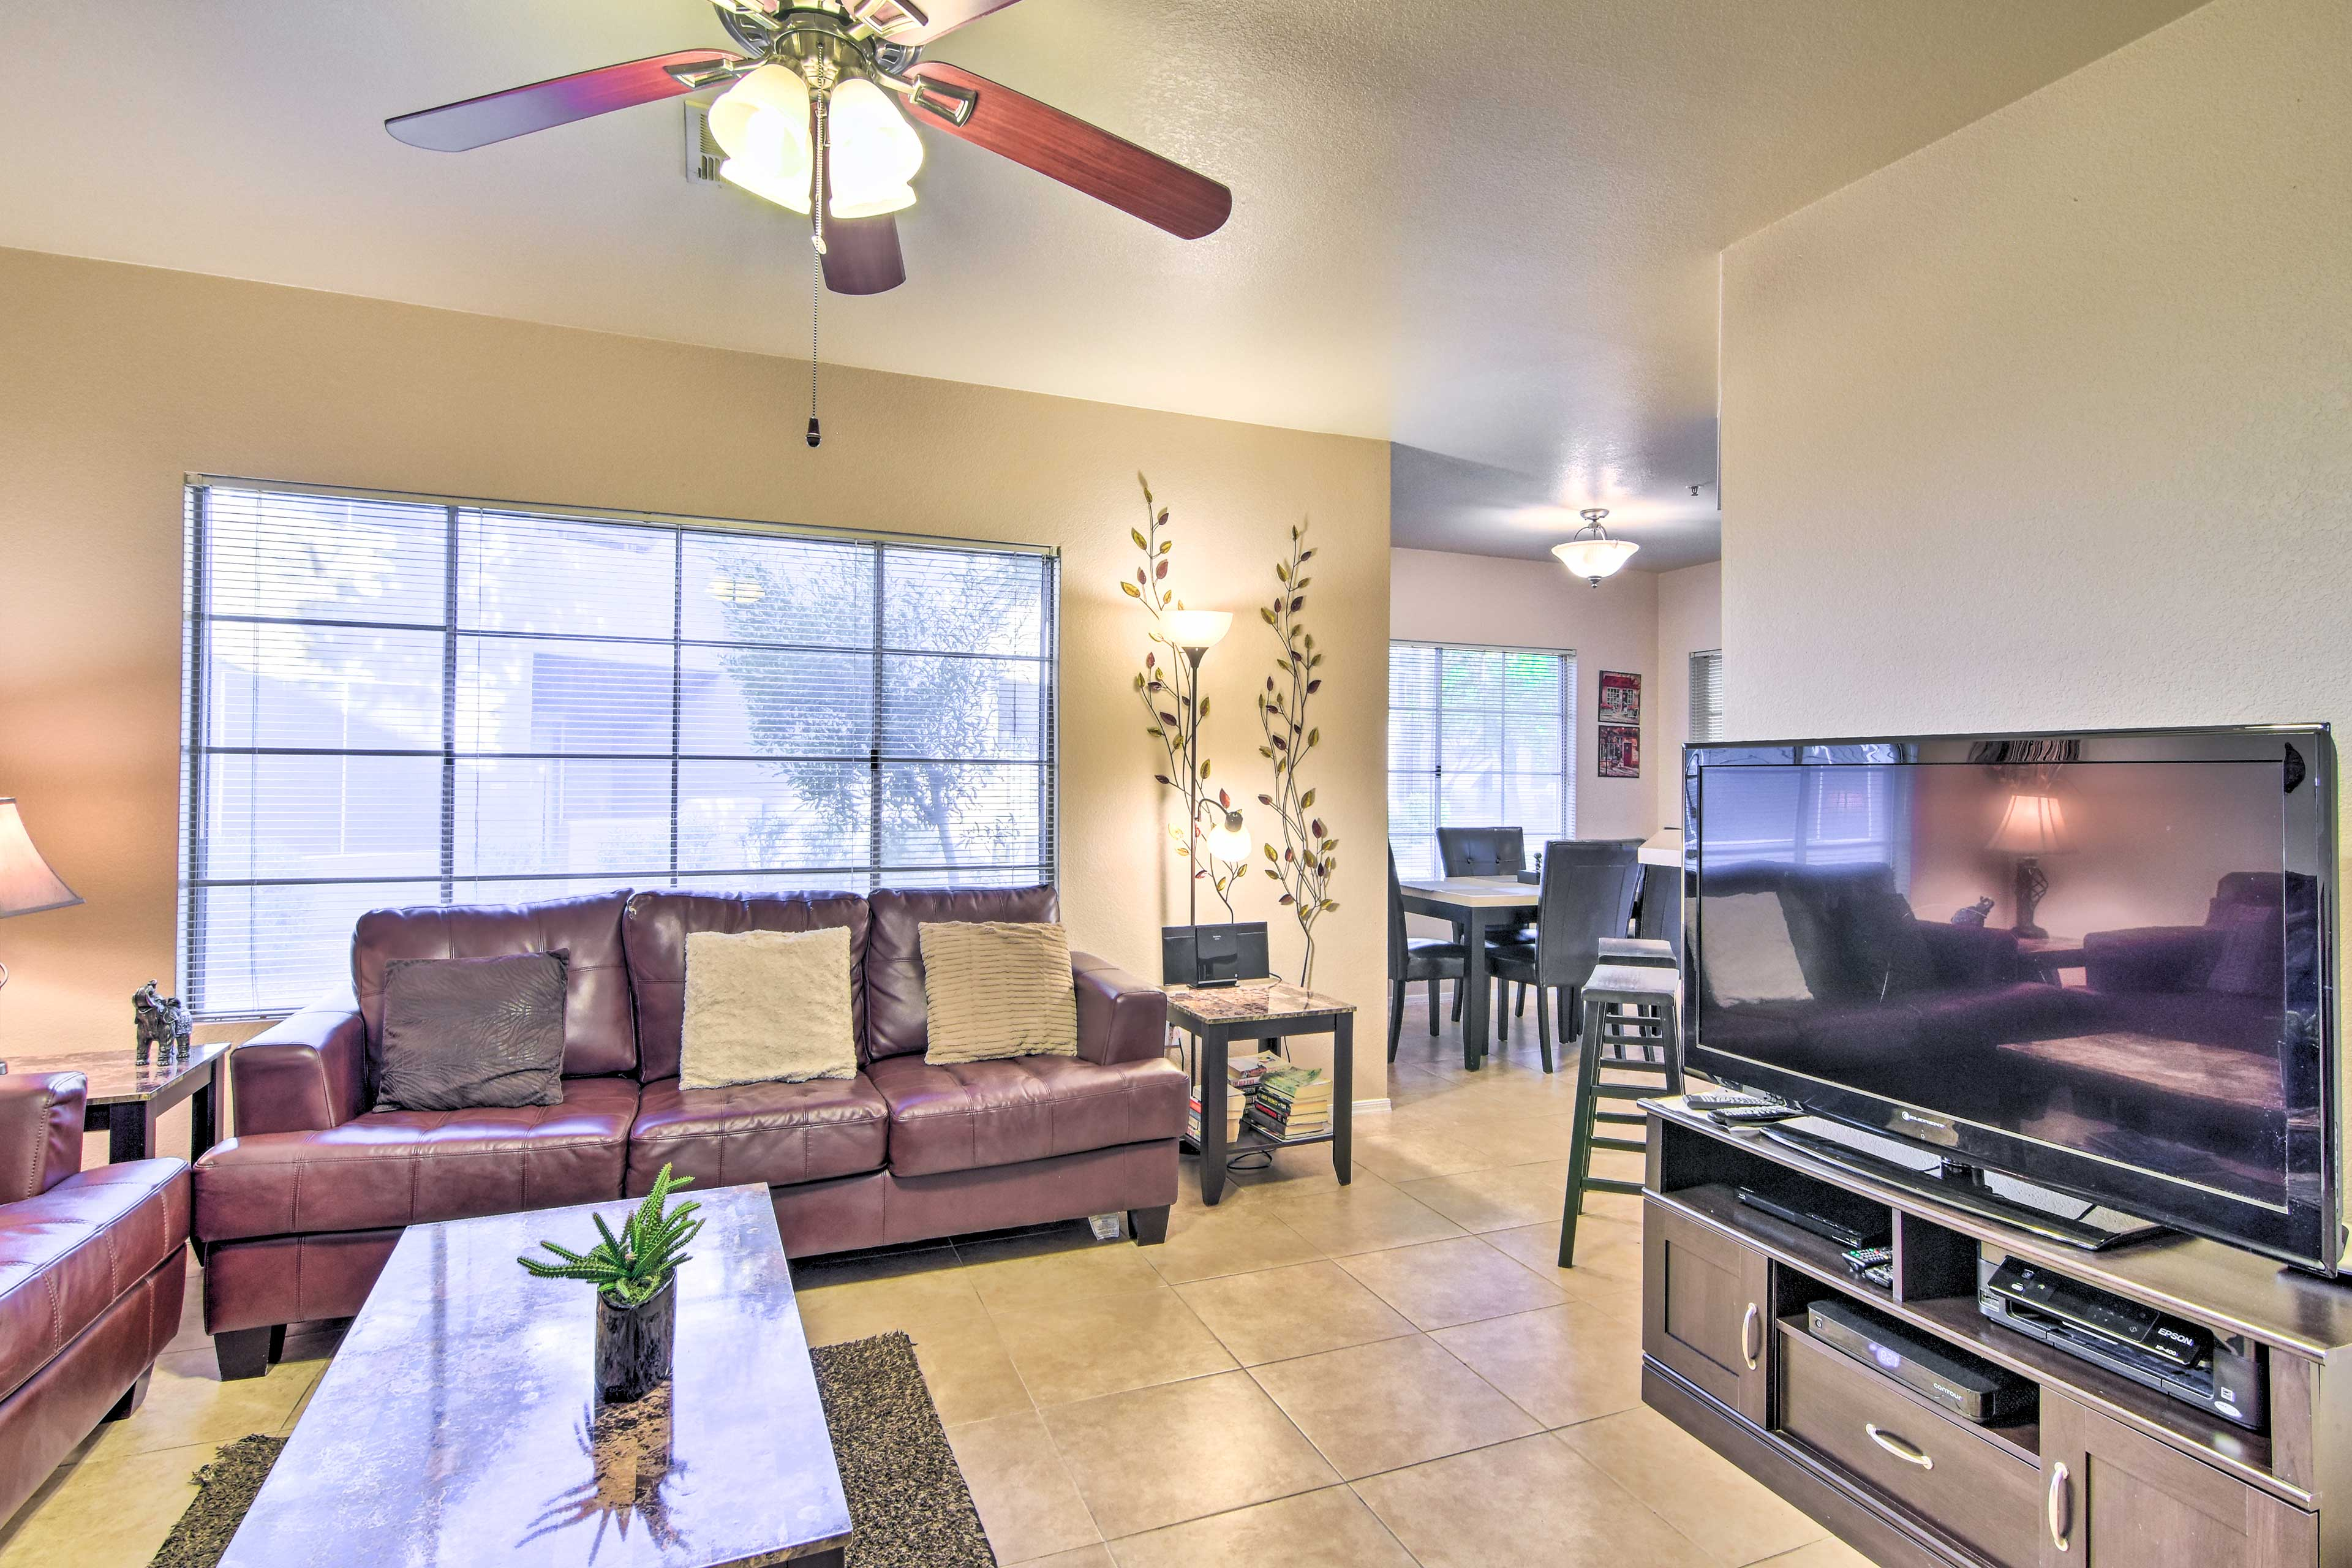 Inside the condo, you'll find a comfortable living room.